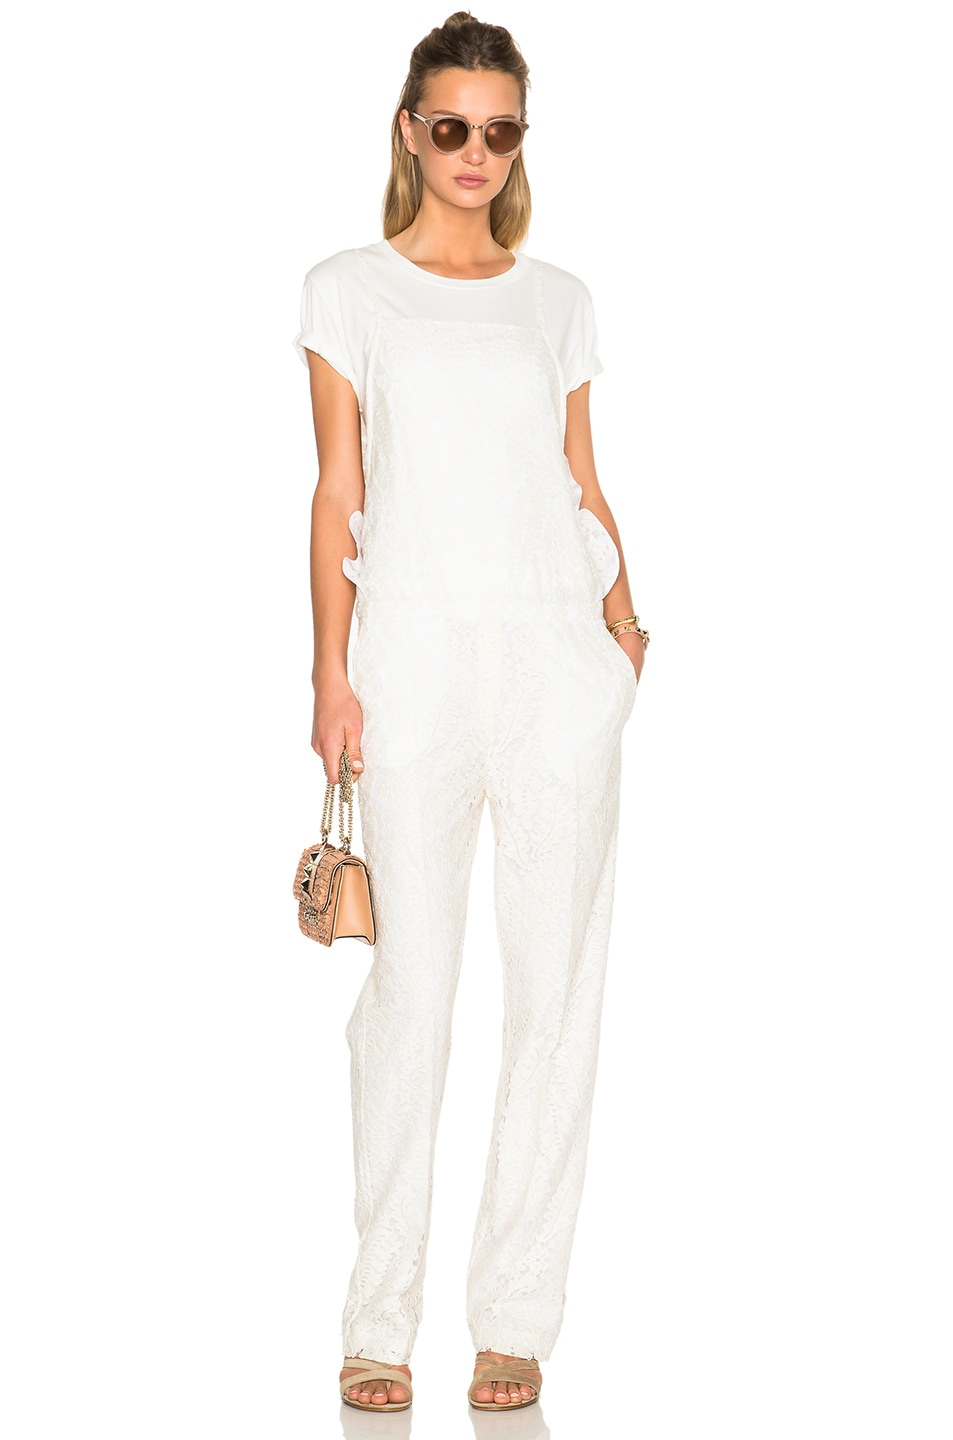 Image 5 of No. 21 Jumpsuit in White